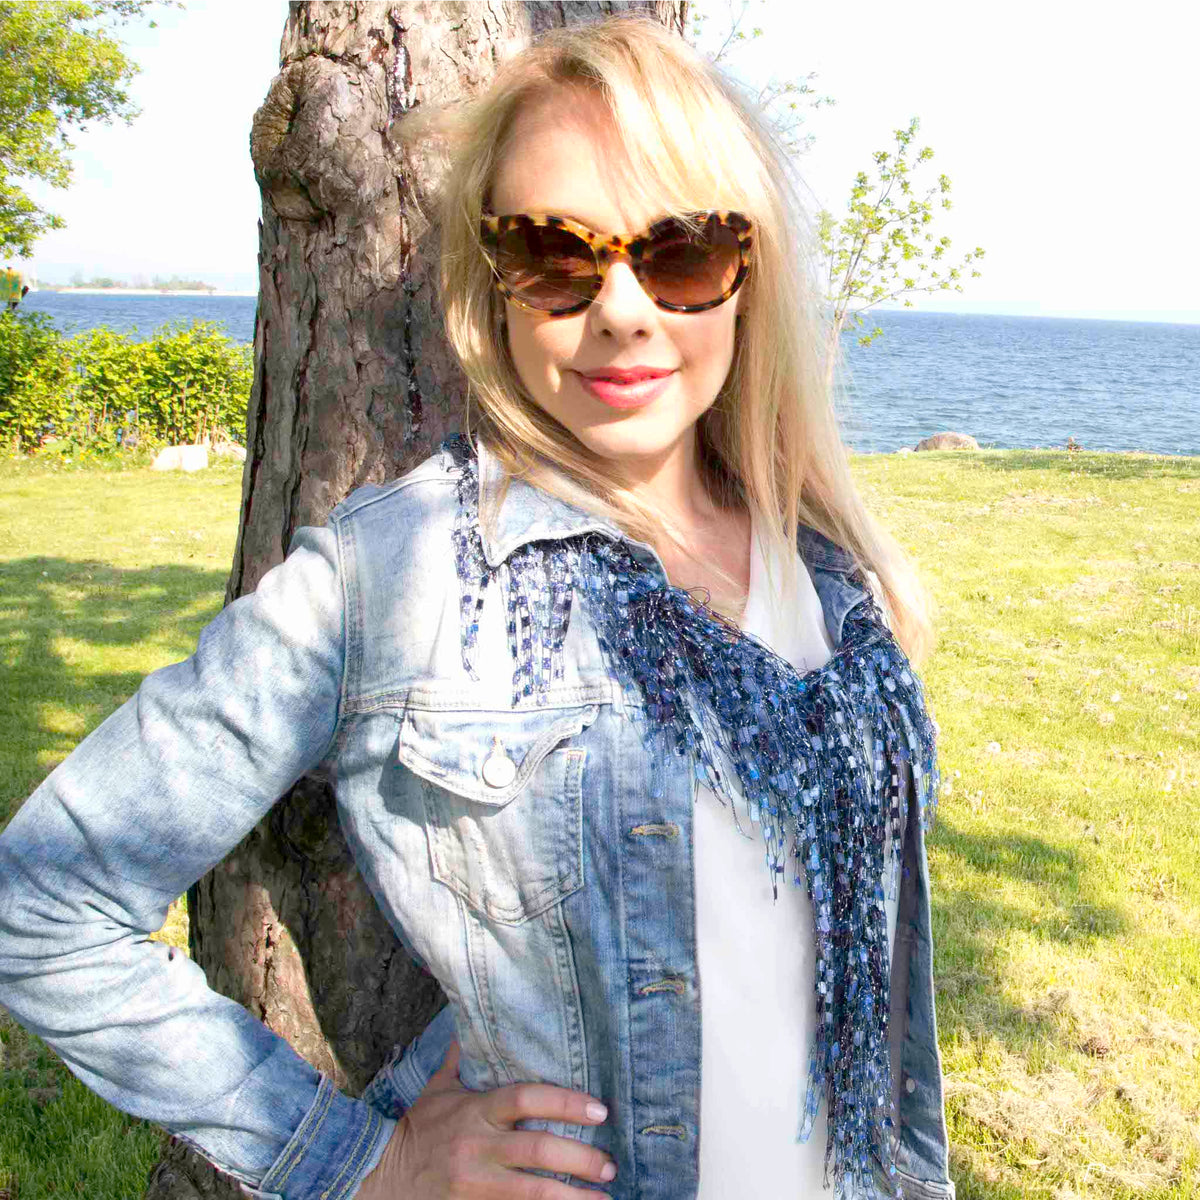 women leaning against tree in park wearing denim jacket, sunglasses and blue scarf necklace